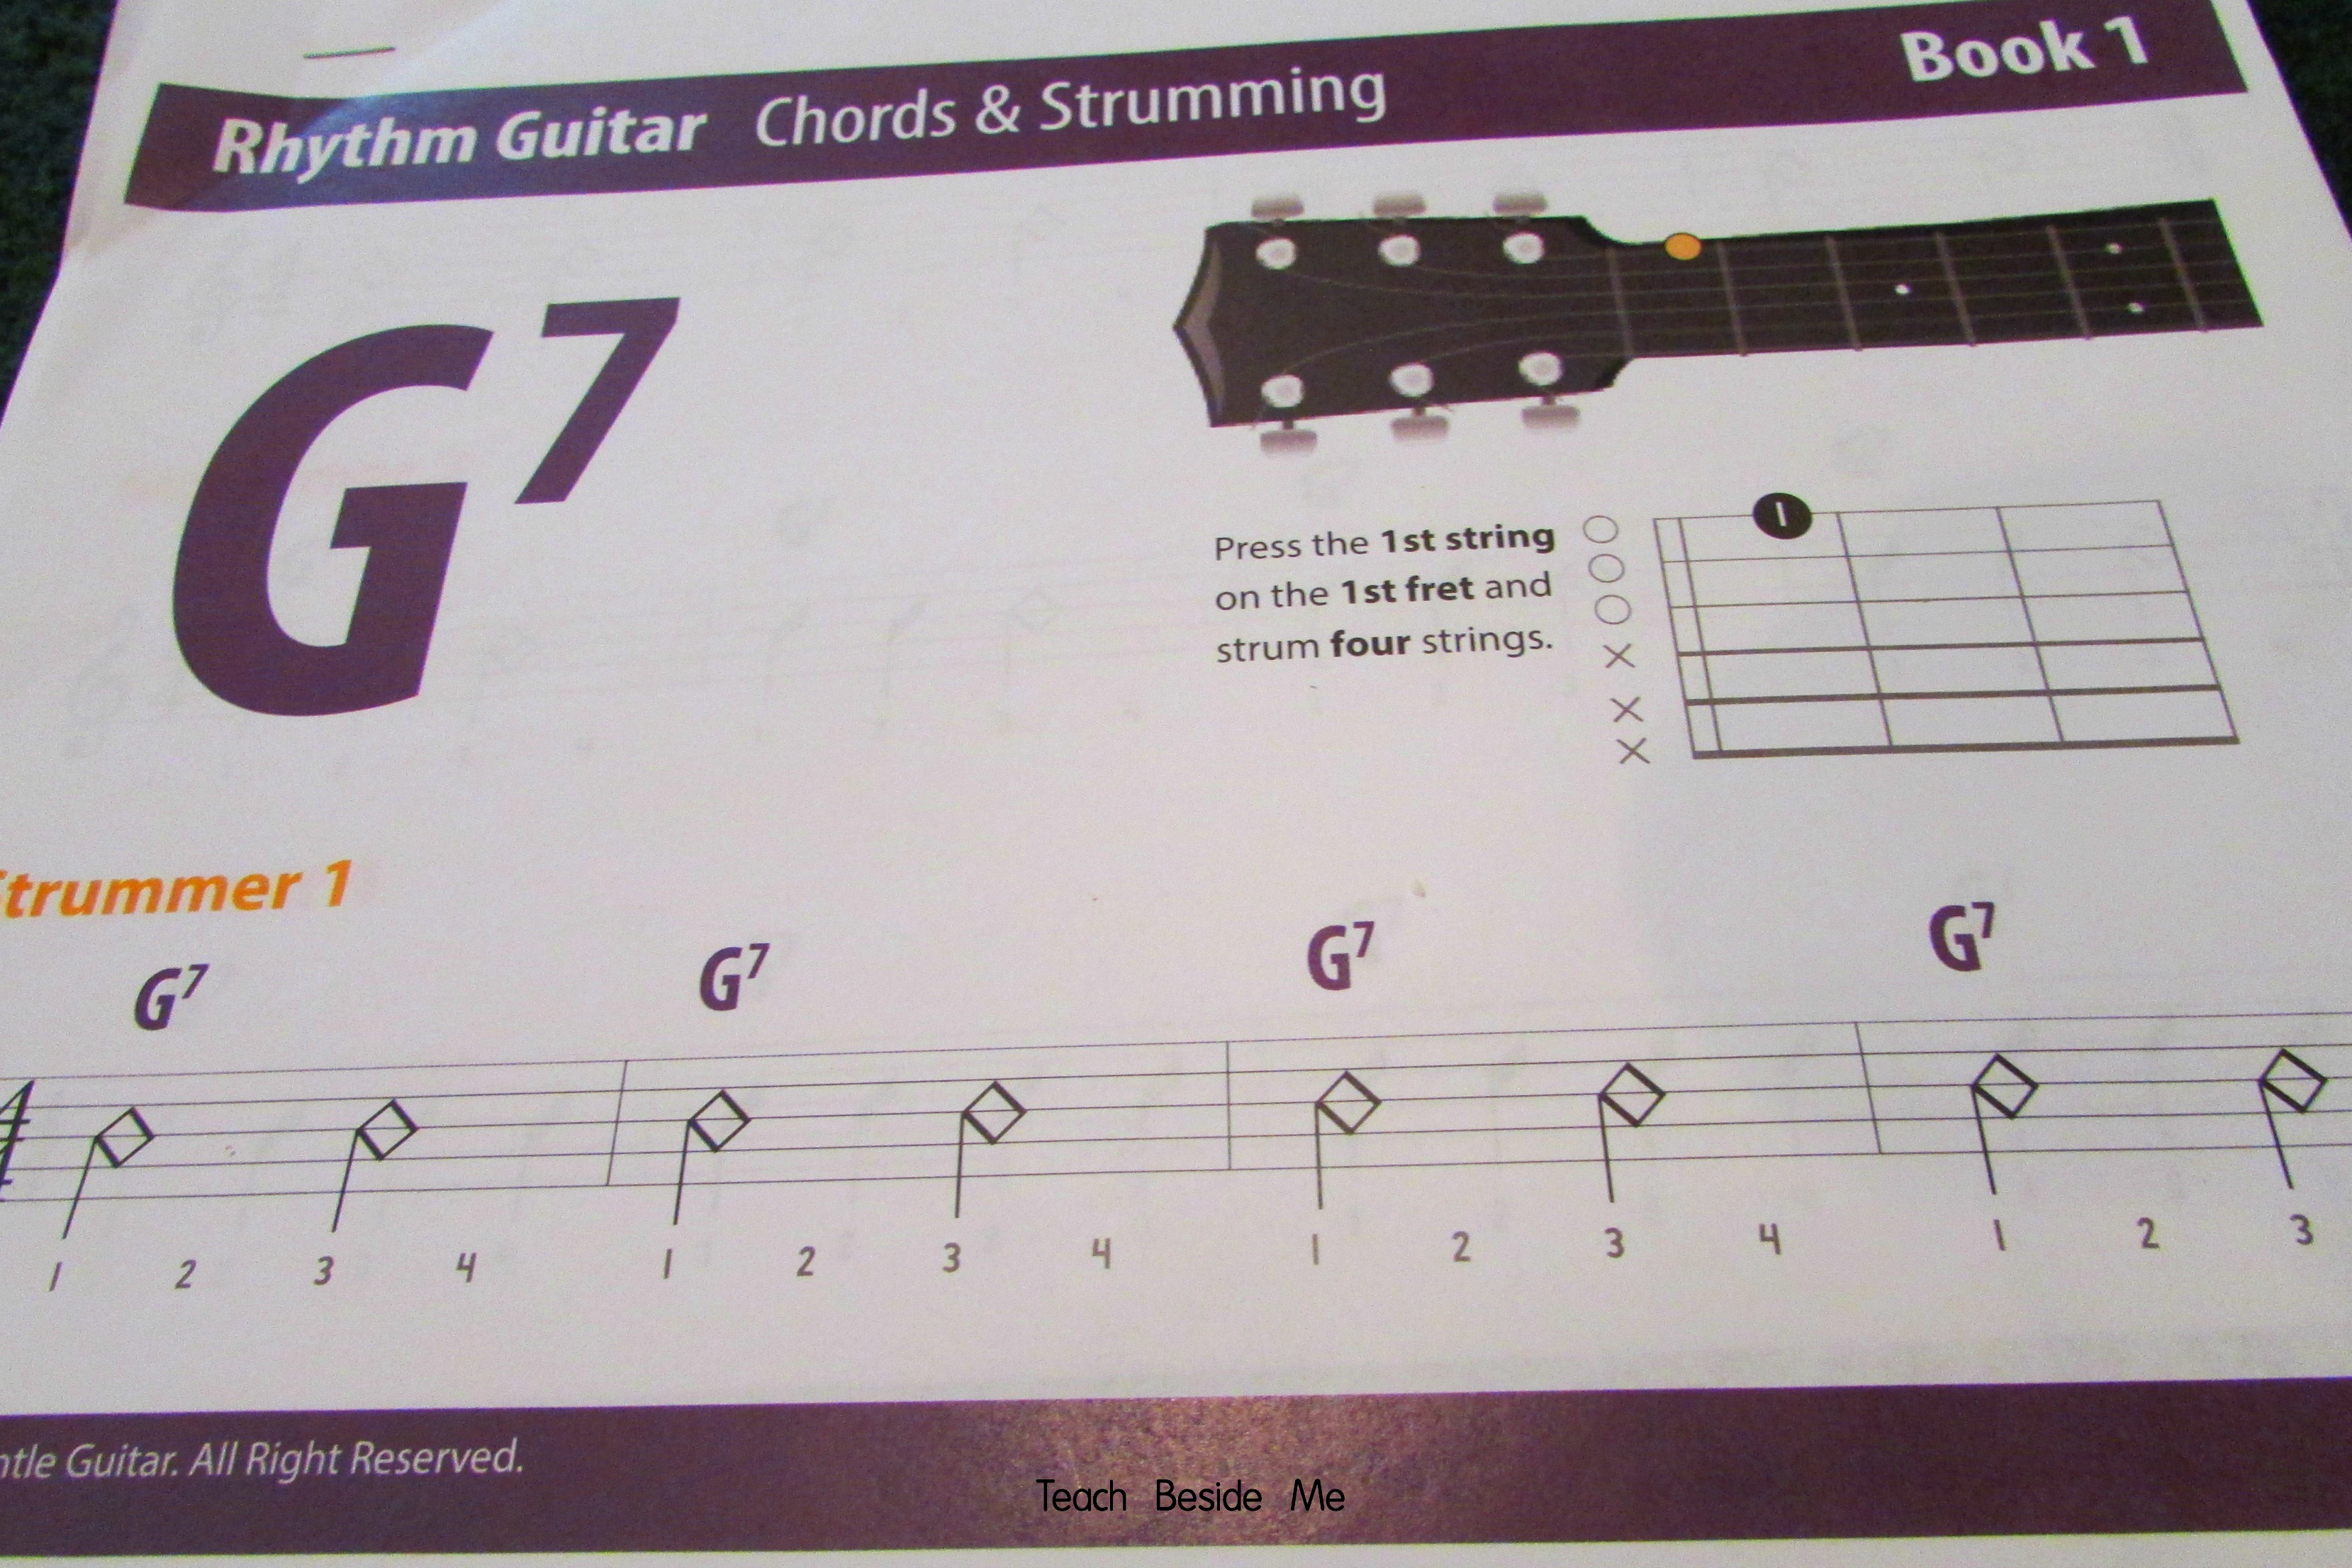 Gentle Guitar lesson book